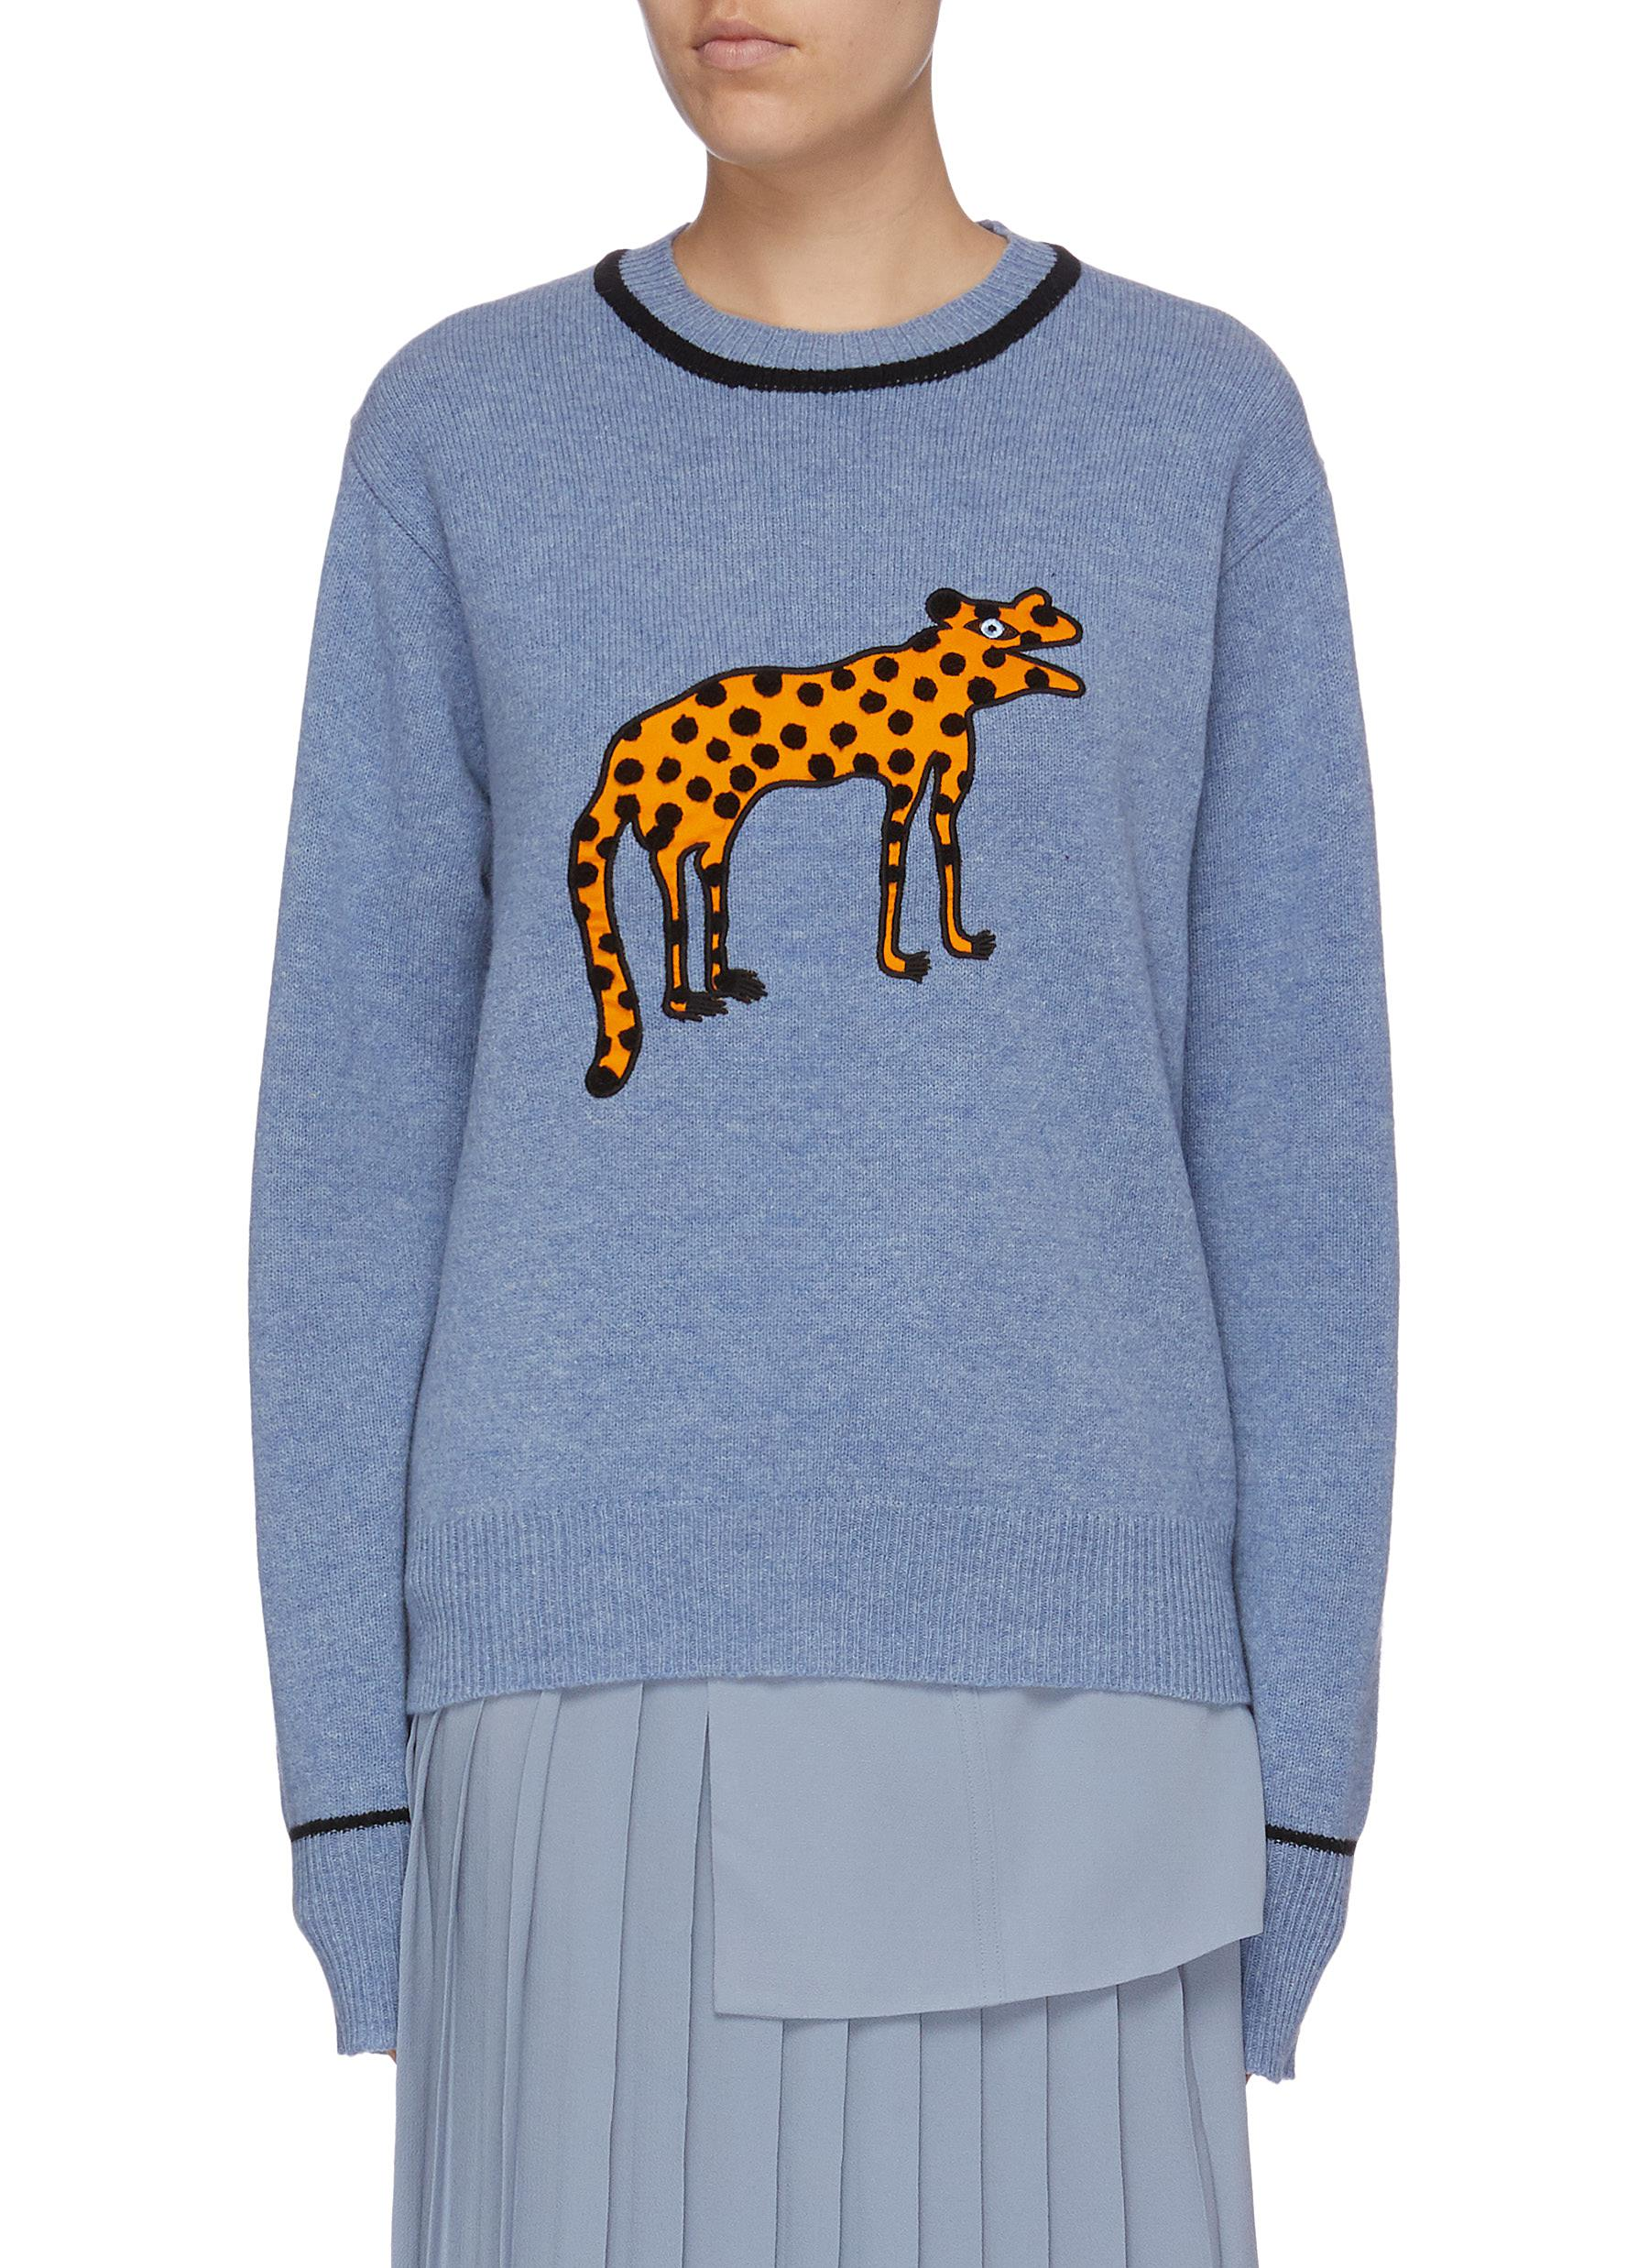 Spotted creature patch lambswool sweater by Victoria, Victoria Beckham